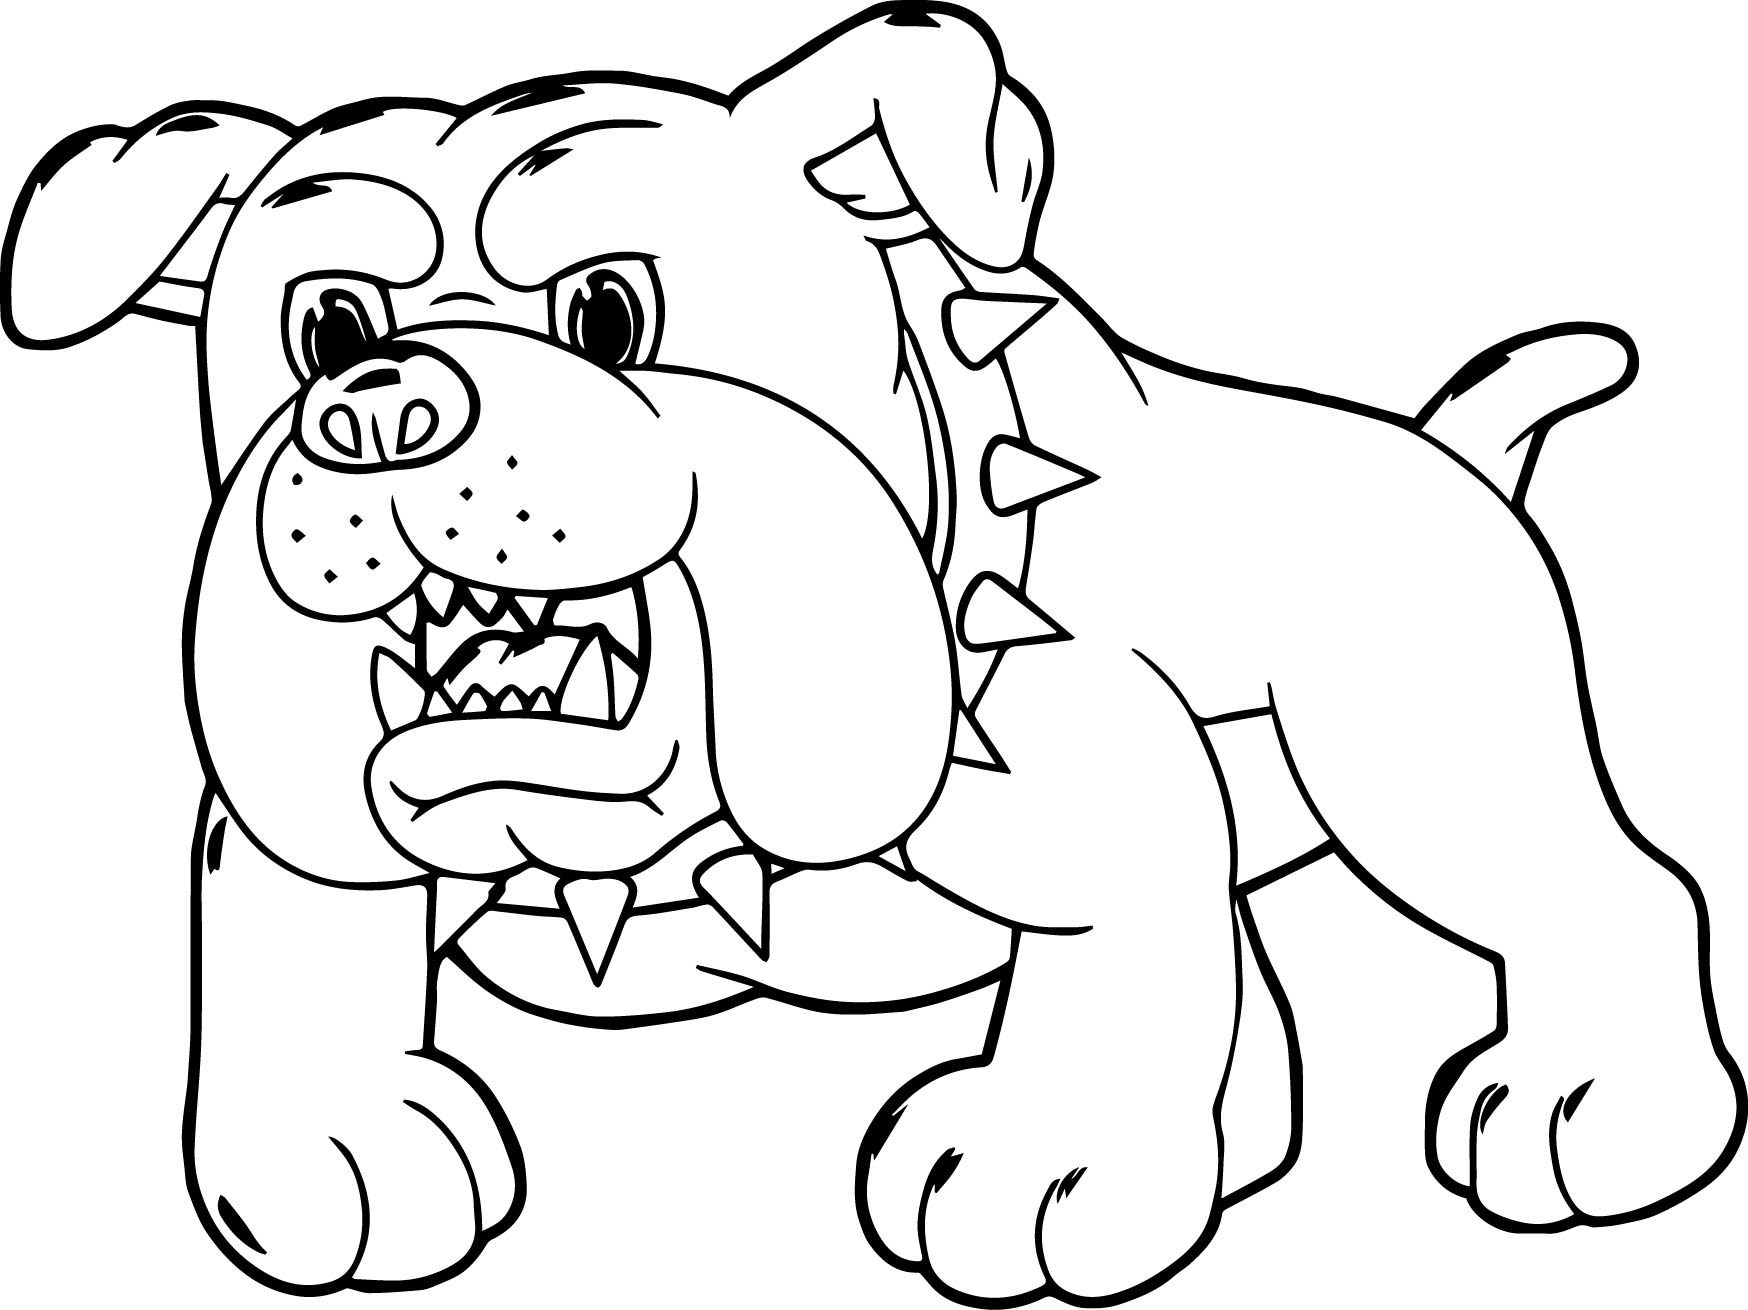 1748x1310 Fresh Cartoon Dogs Coloring Pages Collection Printable Coloring